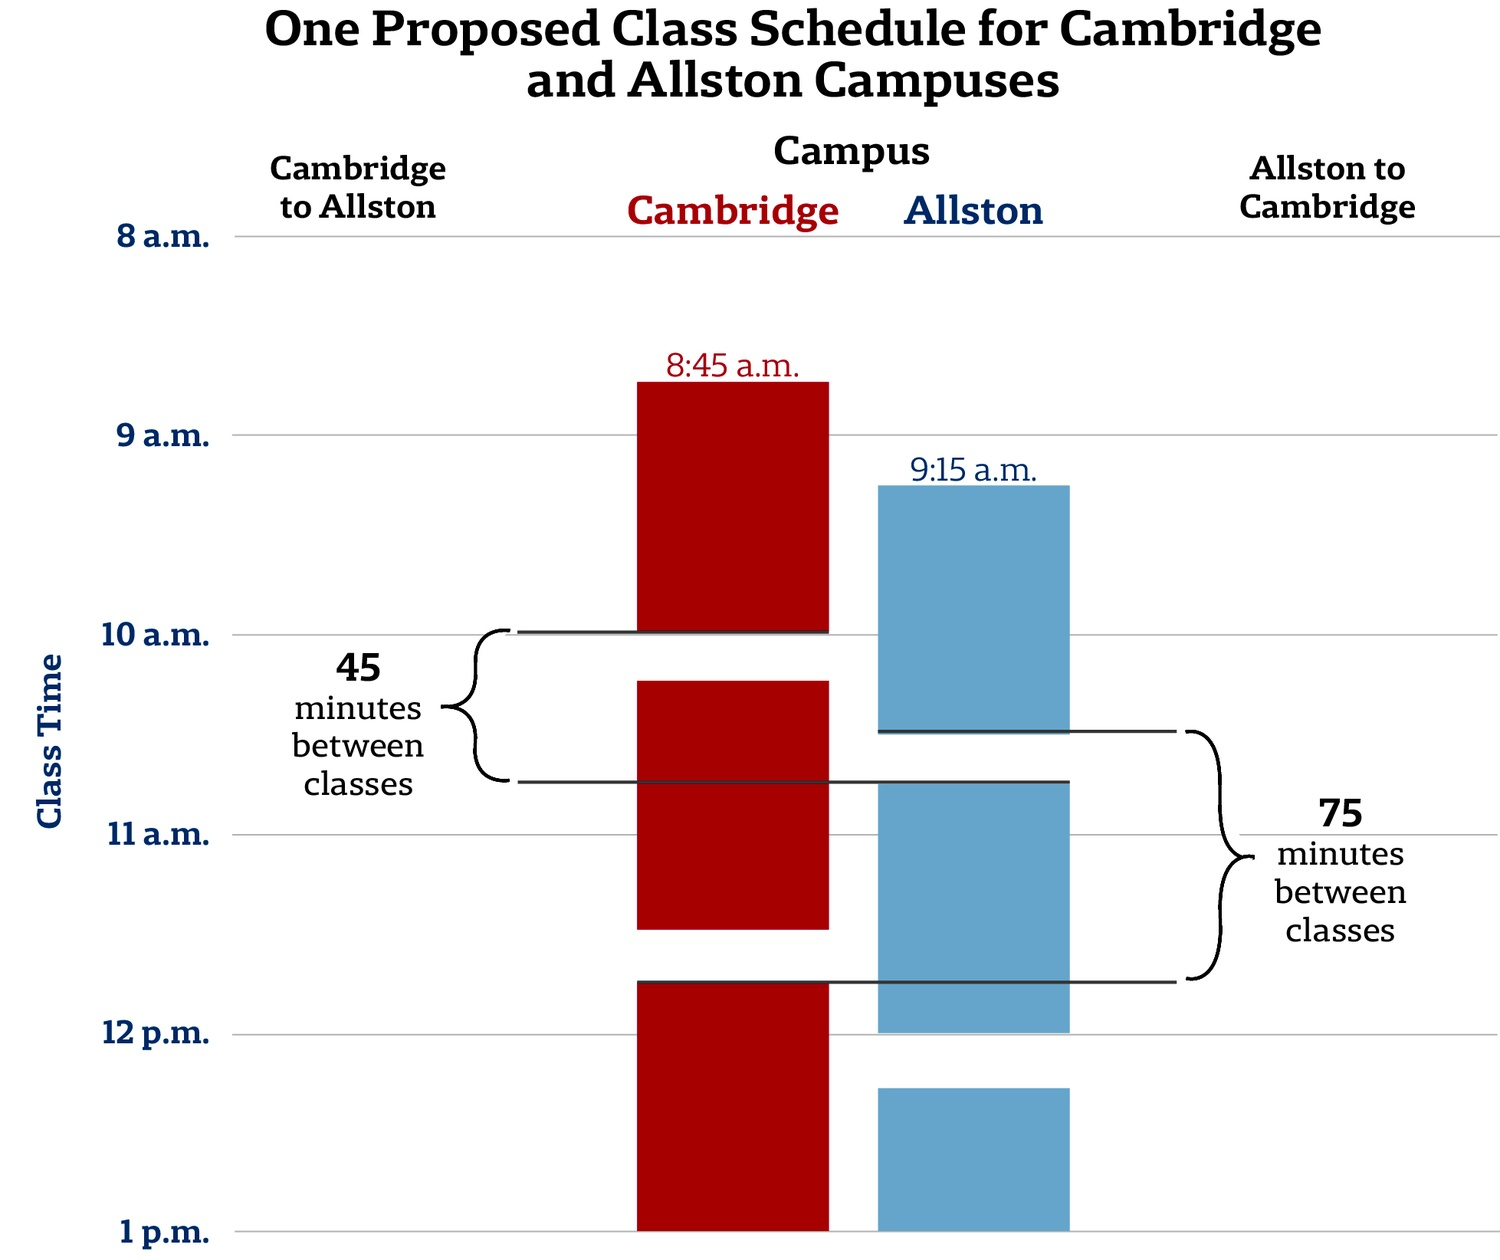 One Proposed Class Schedule for Cambridge and Allston Campuses